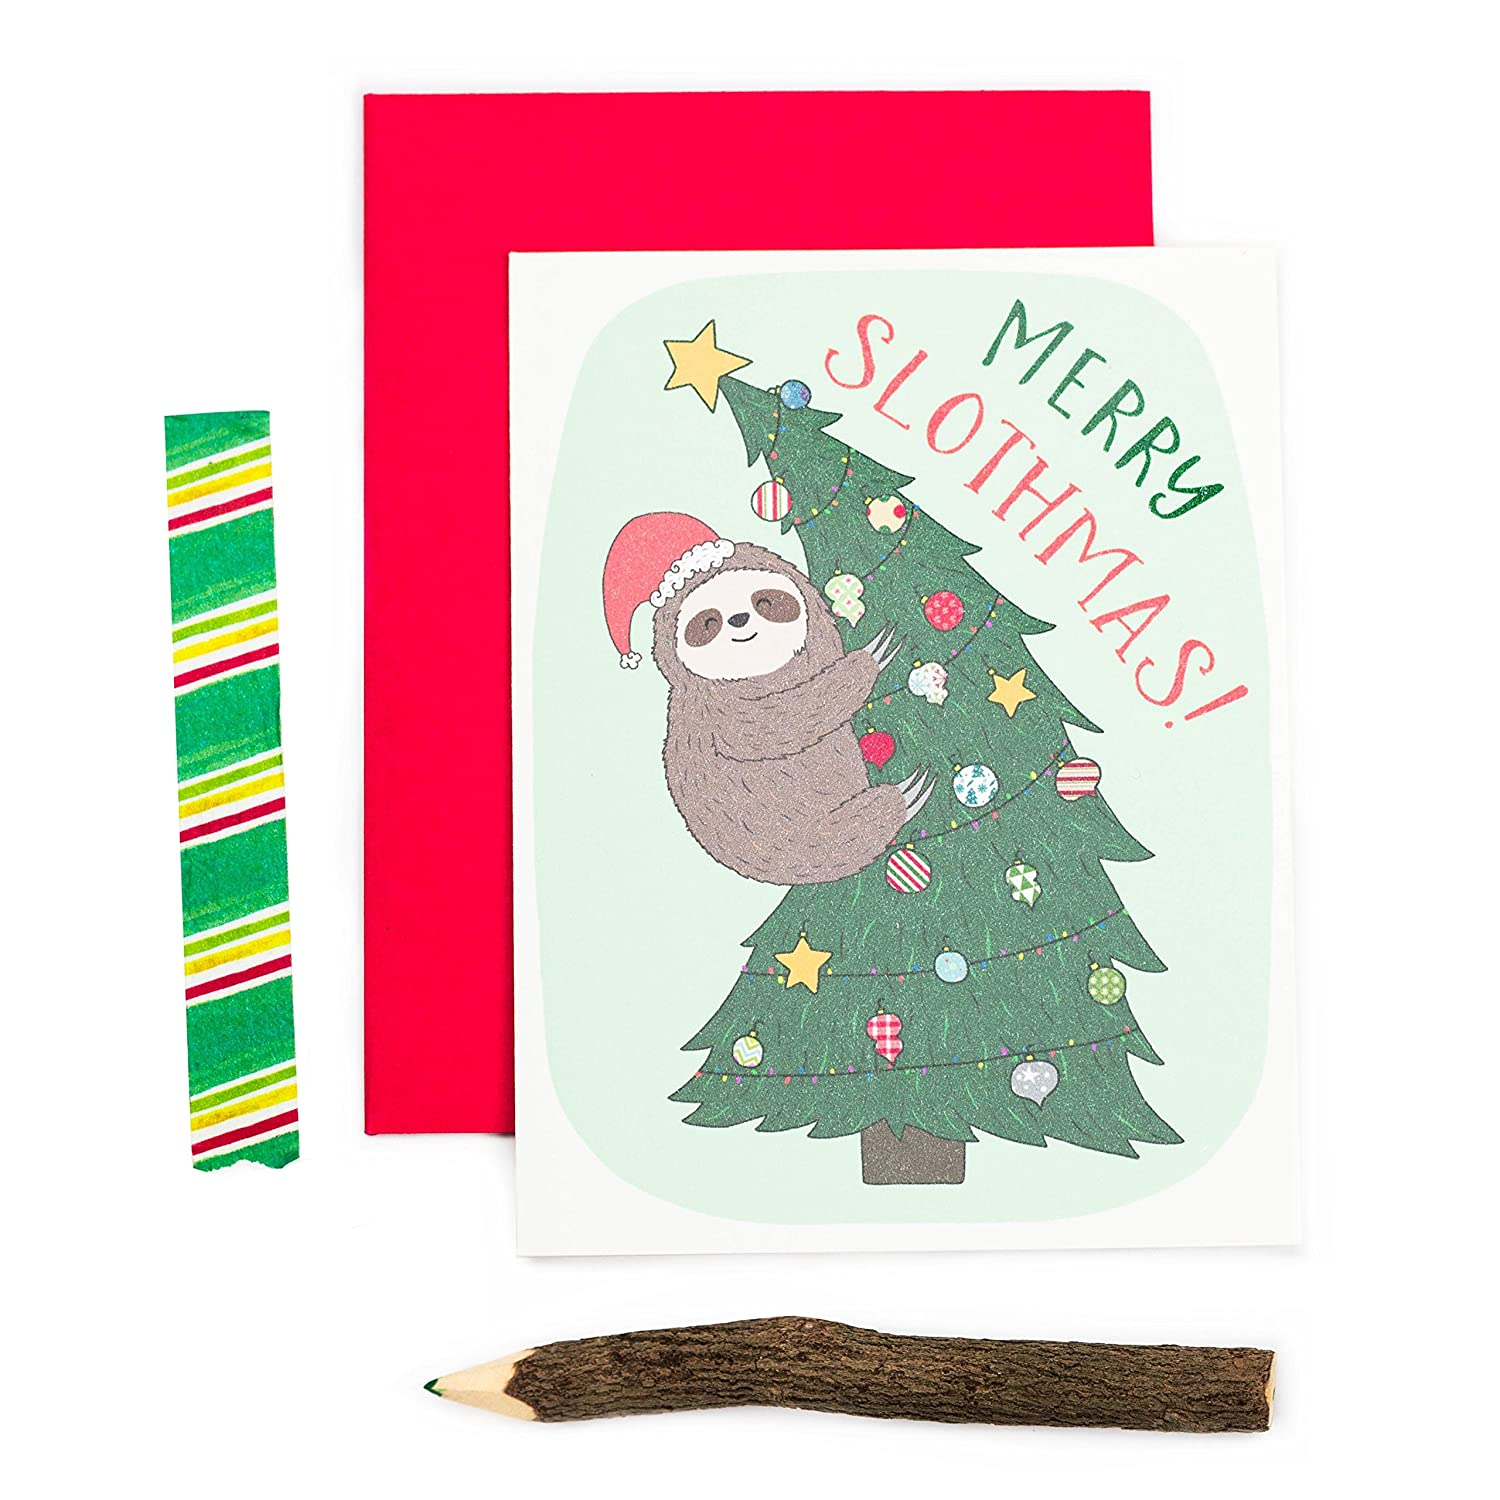 Amazon.com: Merry Slothmas - Funny Christmas Card - Christmas Pun ...